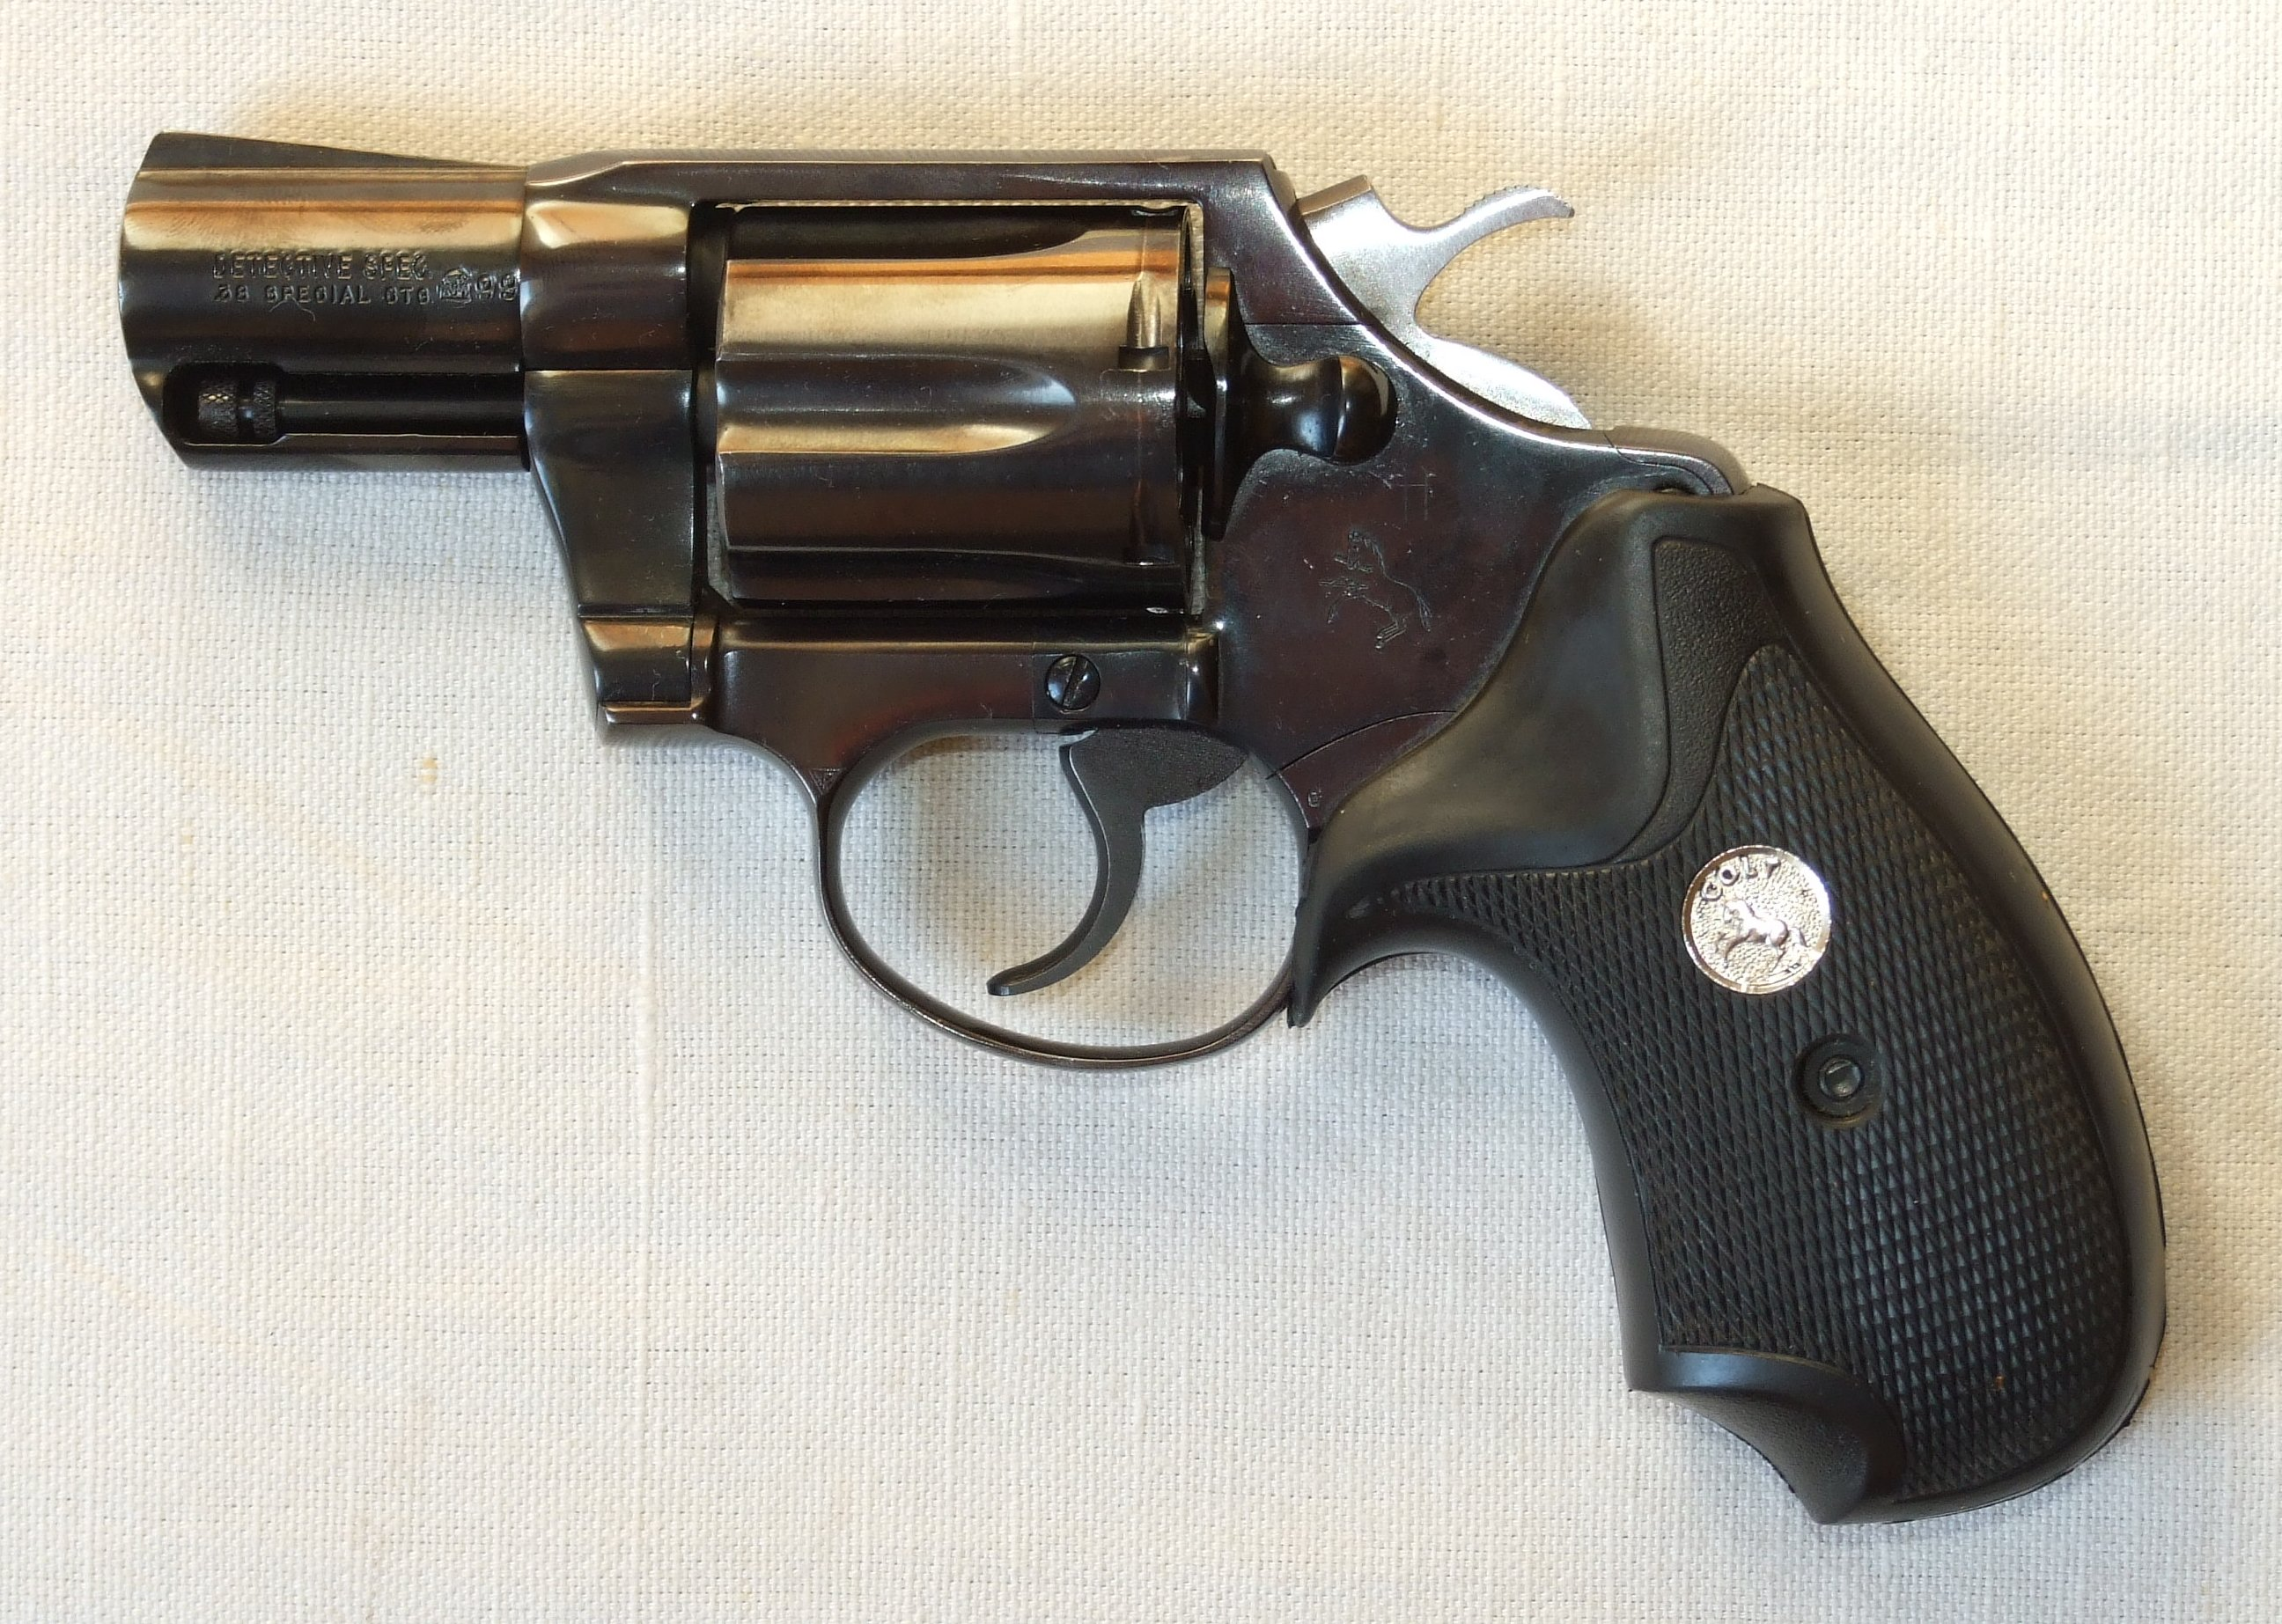 https://upload.wikimedia.org/wikipedia/commons/9/94/Colt_Detective-JH01.jpg